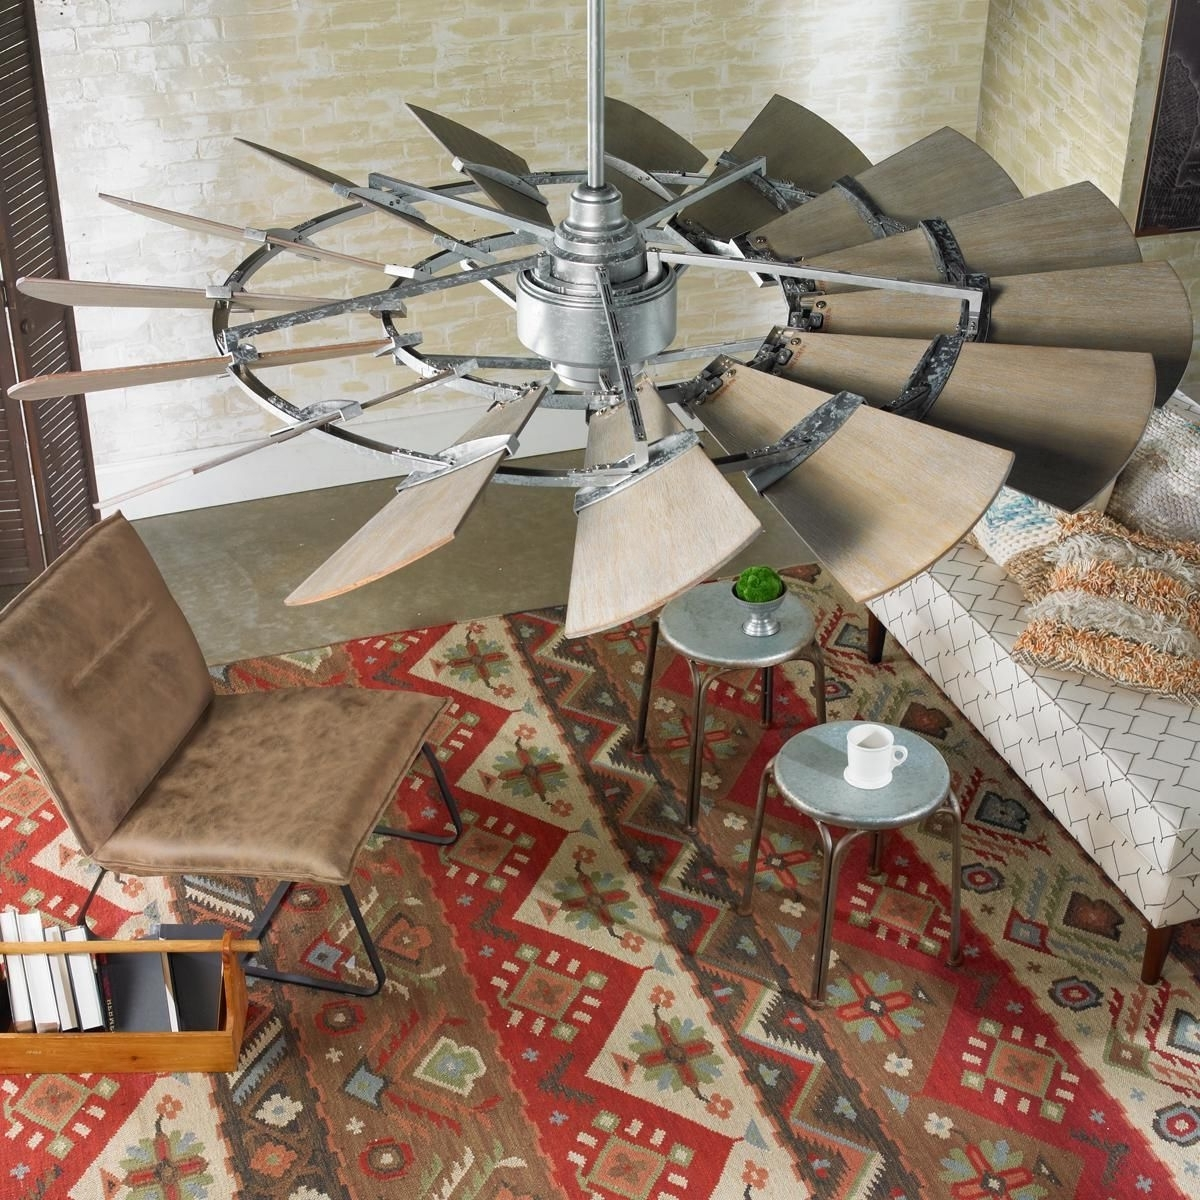 """Most Current Outdoor Windmill Ceiling Fans With Light For 60"""" Outdoor Rustic Windmill Ceiling Fan (View 9 of 20)"""